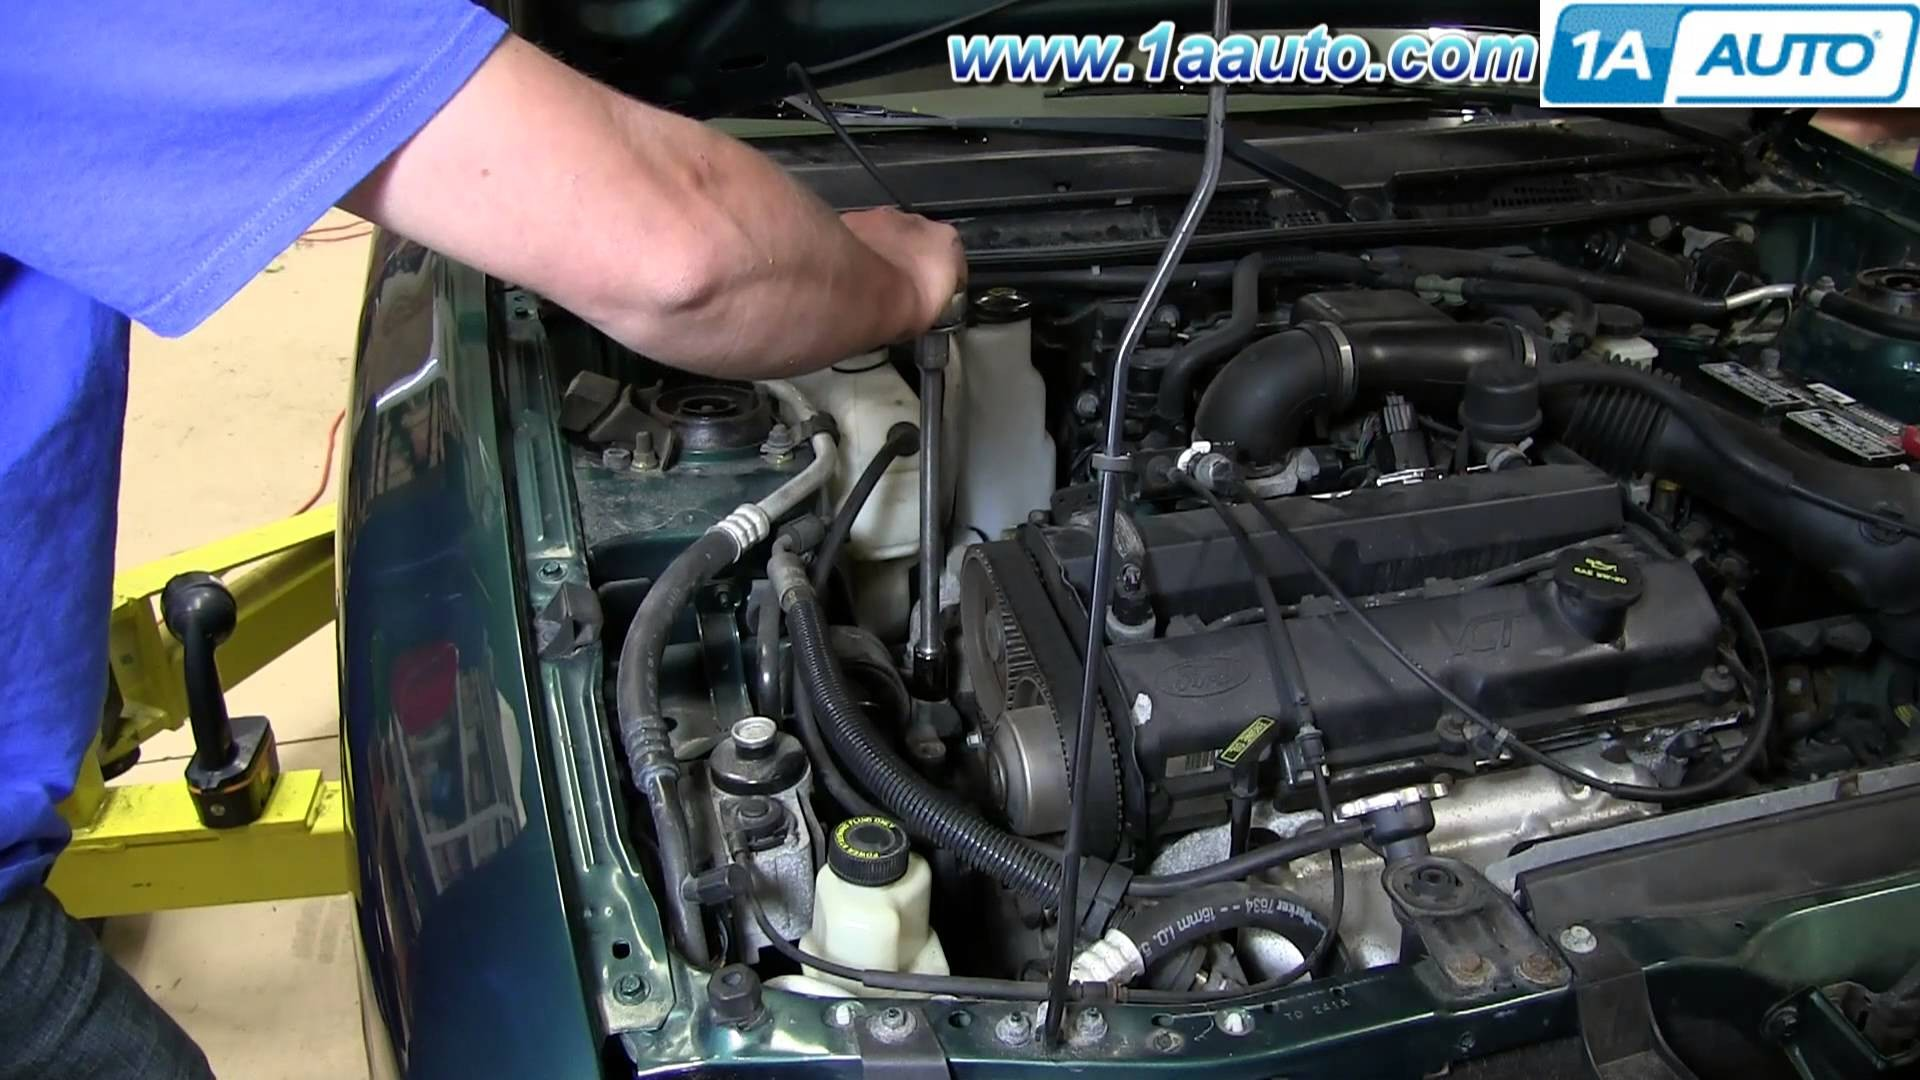 97 Ford Escort Engine Diagram My Wiring Ranger 4 0 Bracket How To Install Replace Upper Mount 1998 03